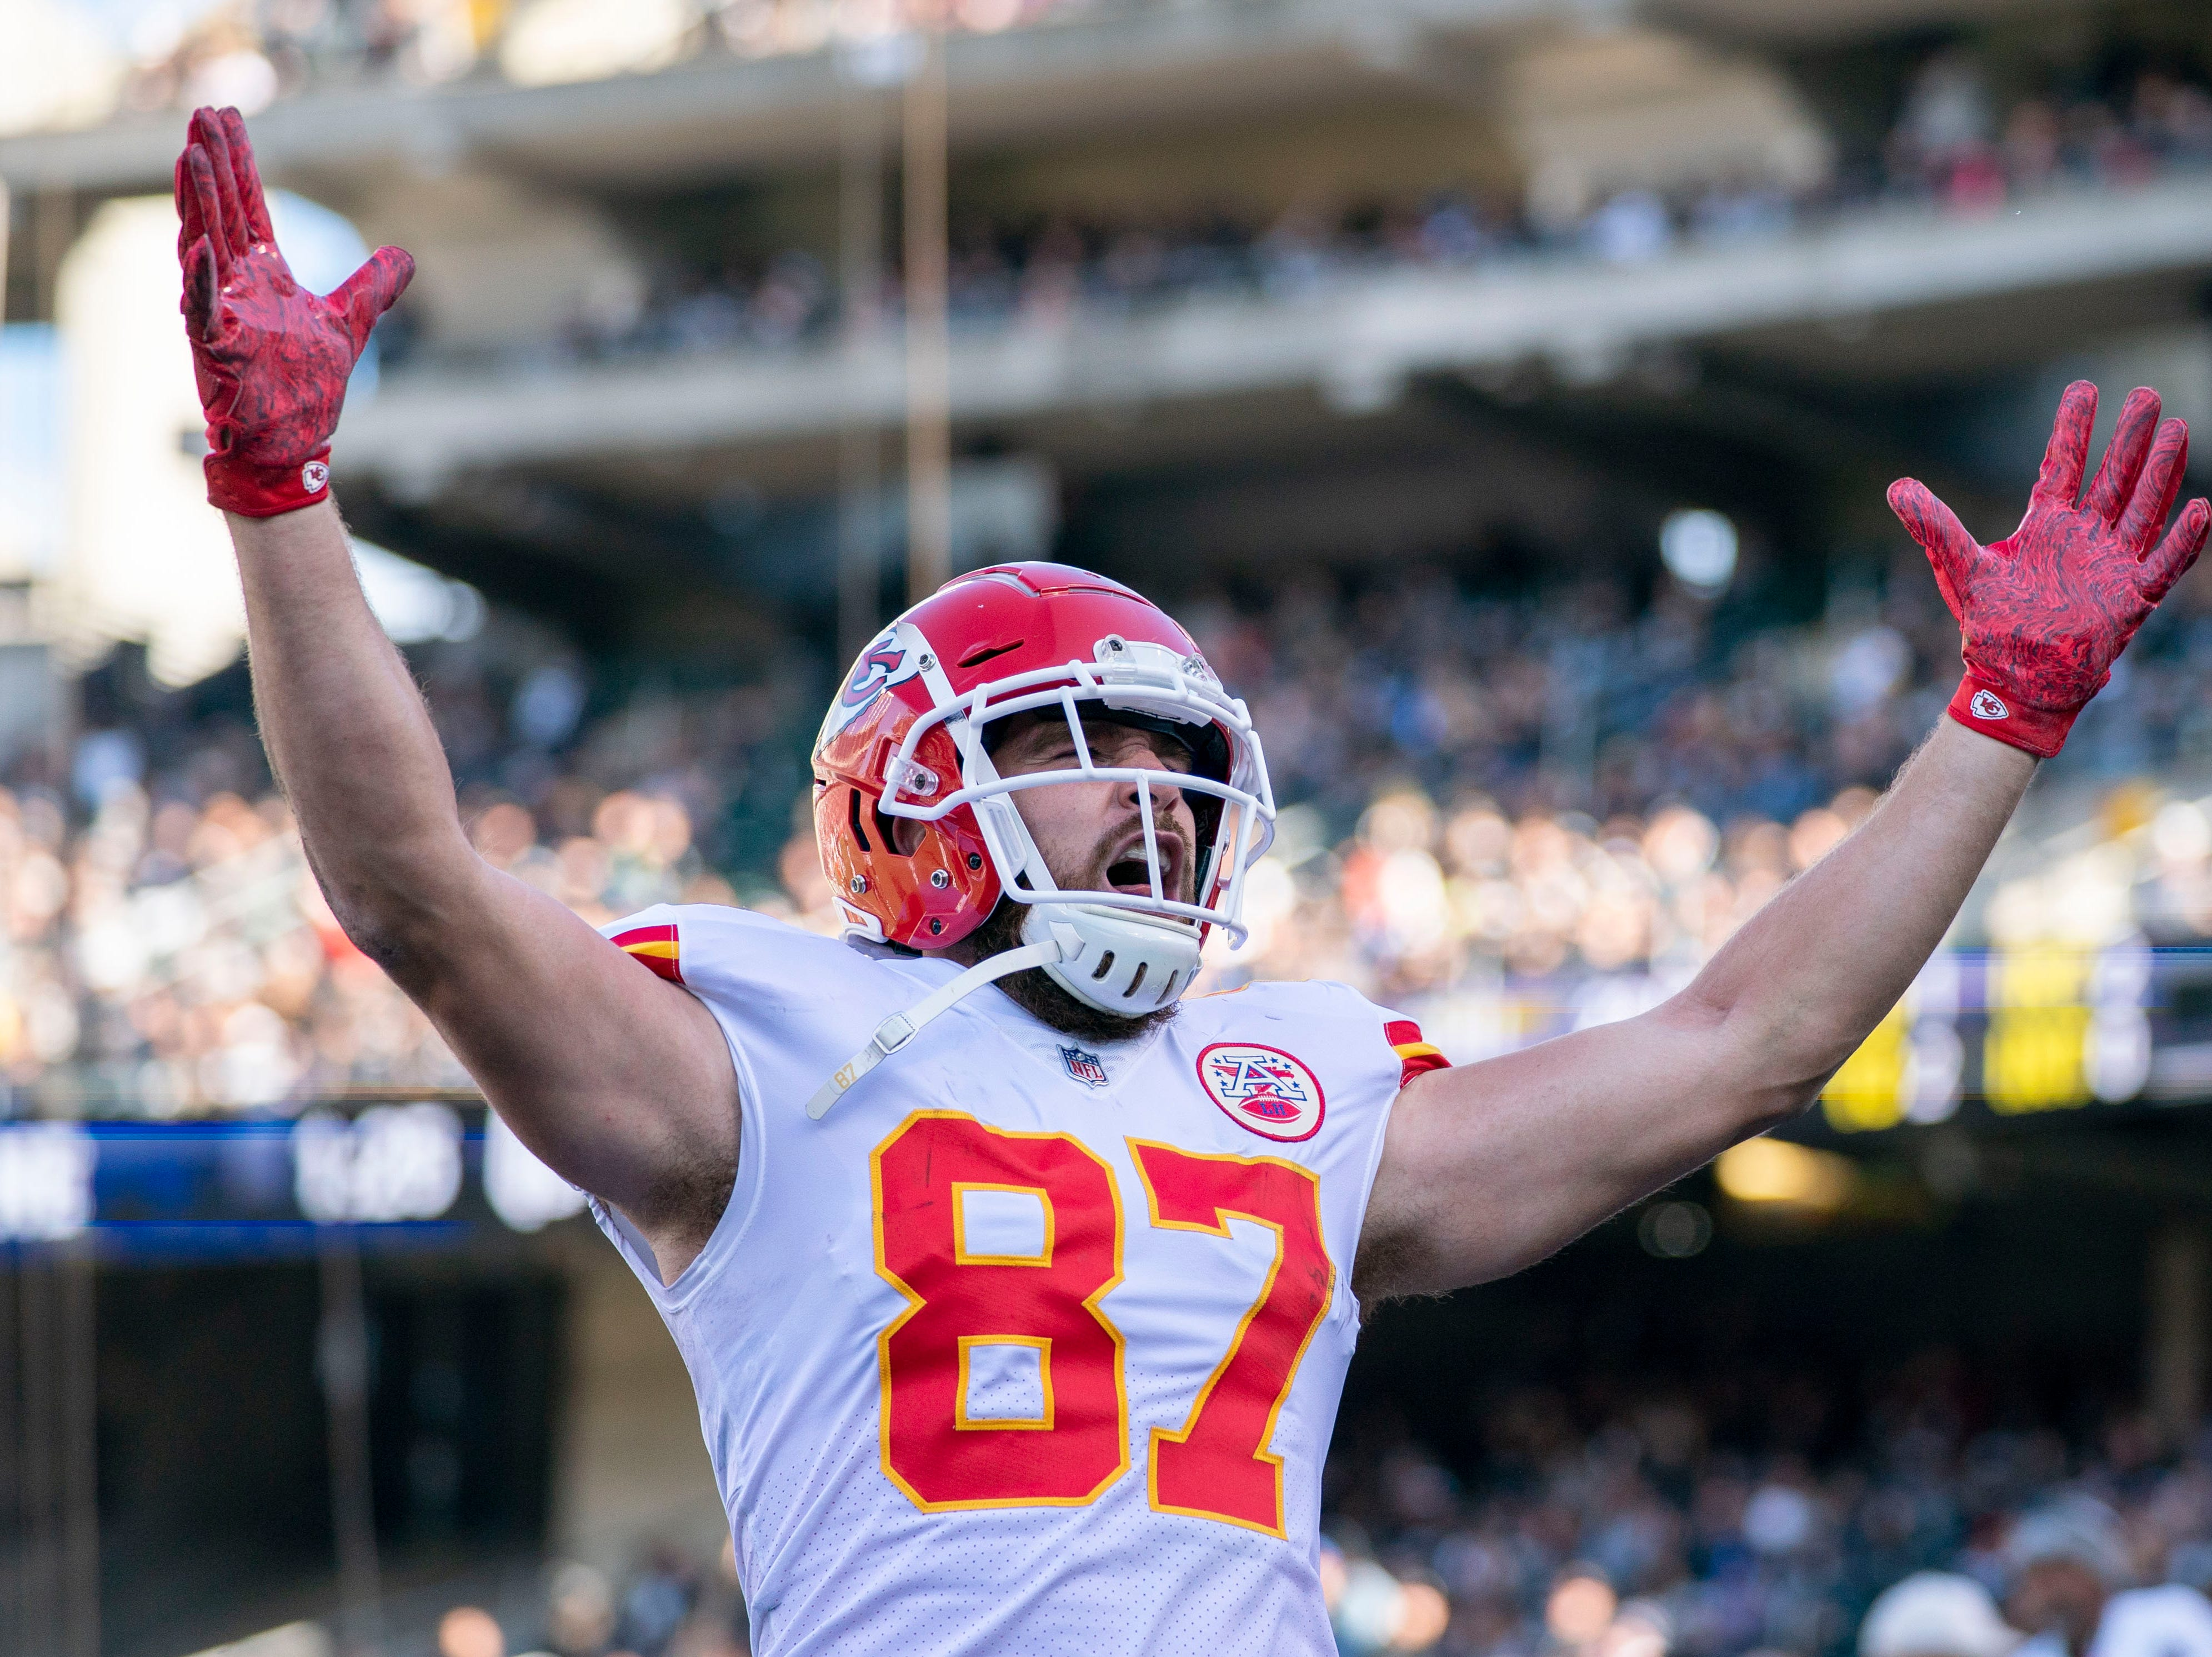 Chiefs tight end Travis Kelce celebrates after scoring a touchdown against the Raiders.